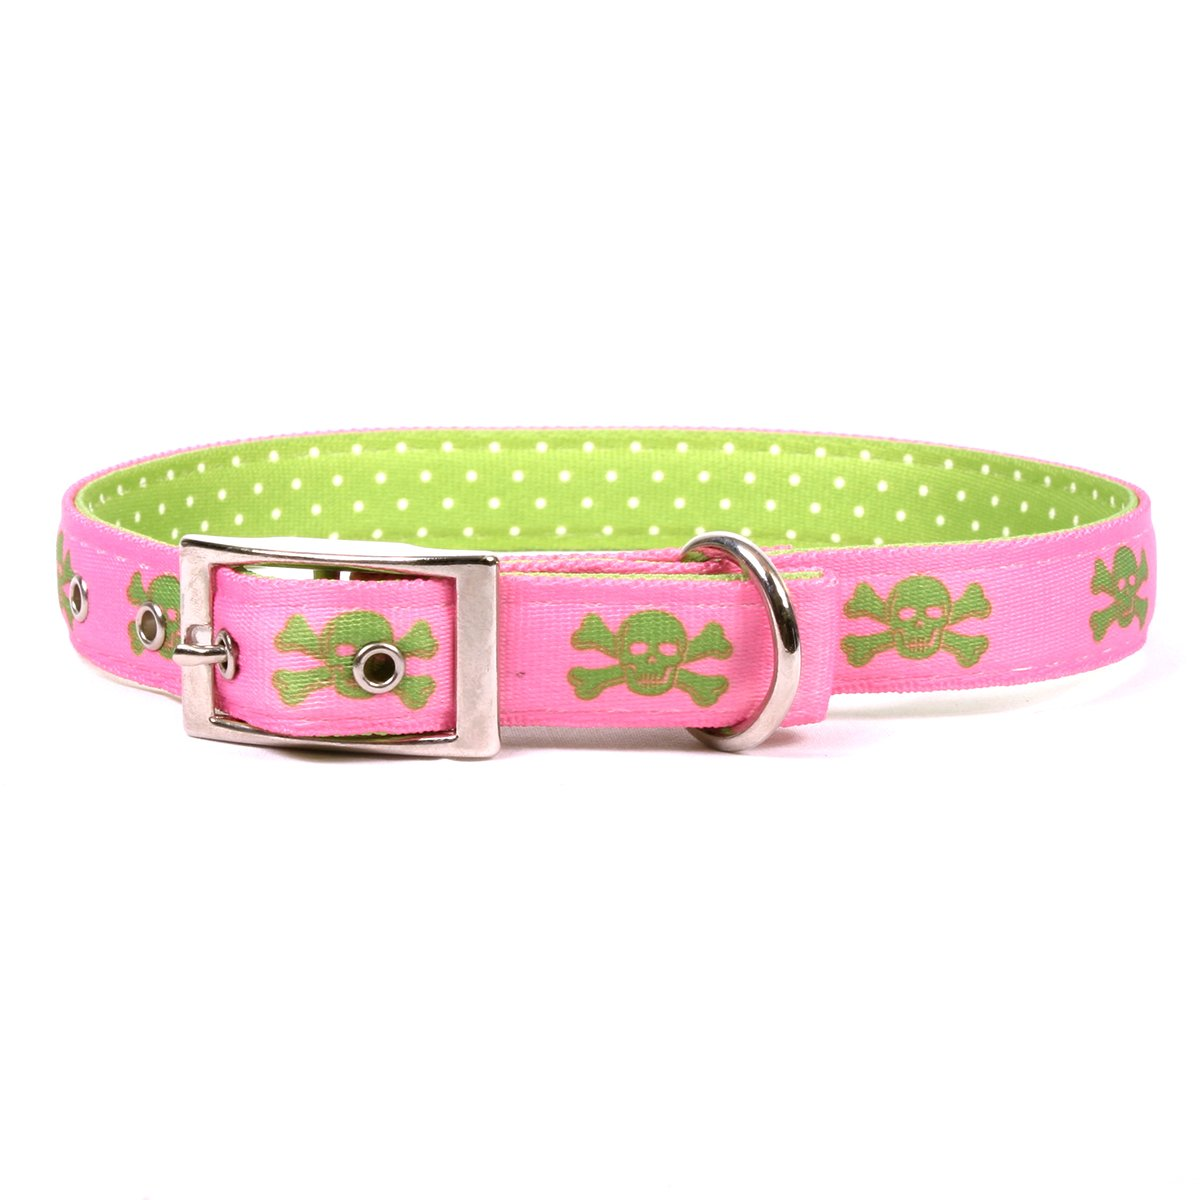 Yellow Dog Design Pink and Green Skulls Uptown Dog Collar, X-Large-1'' Wide and fits Neck Sizes 24 to 27'' by Yellow Dog Design